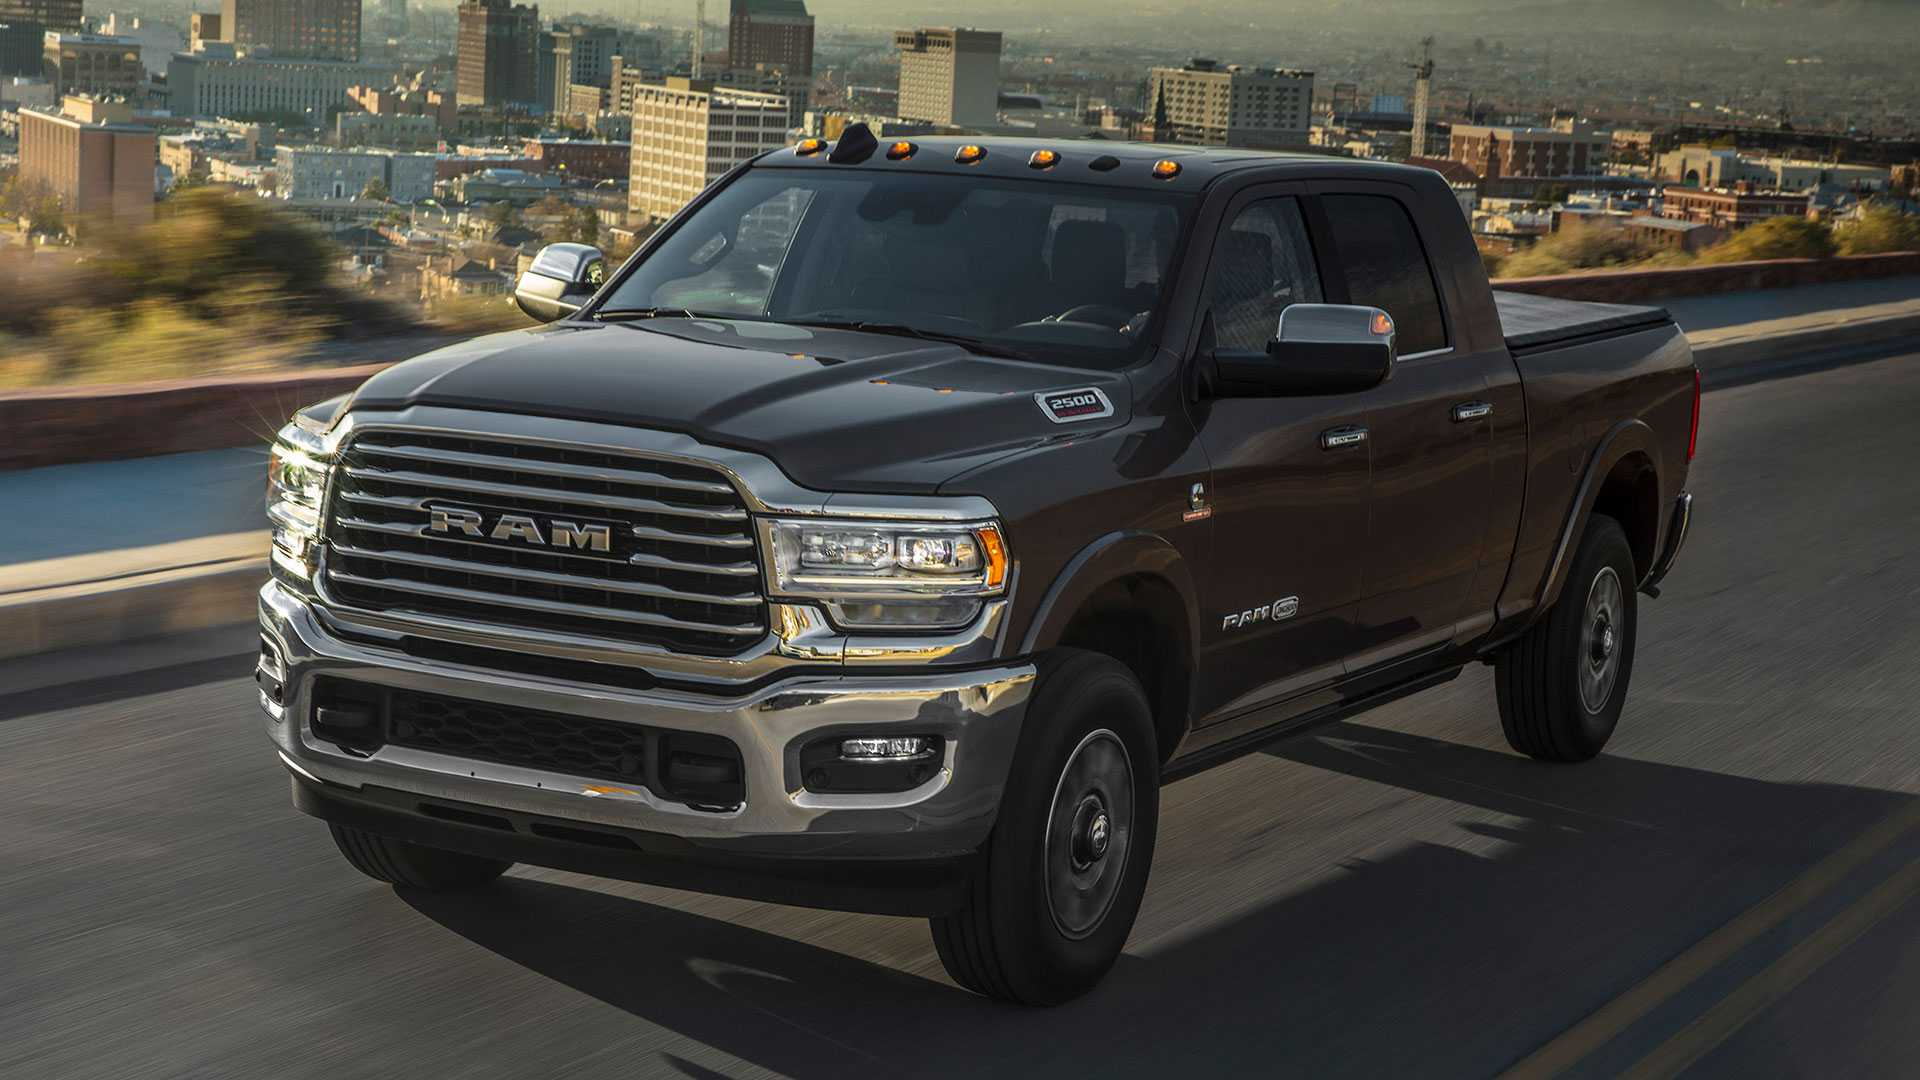 92 All New 2019 Ram 2500 Diesel Price And Release Date